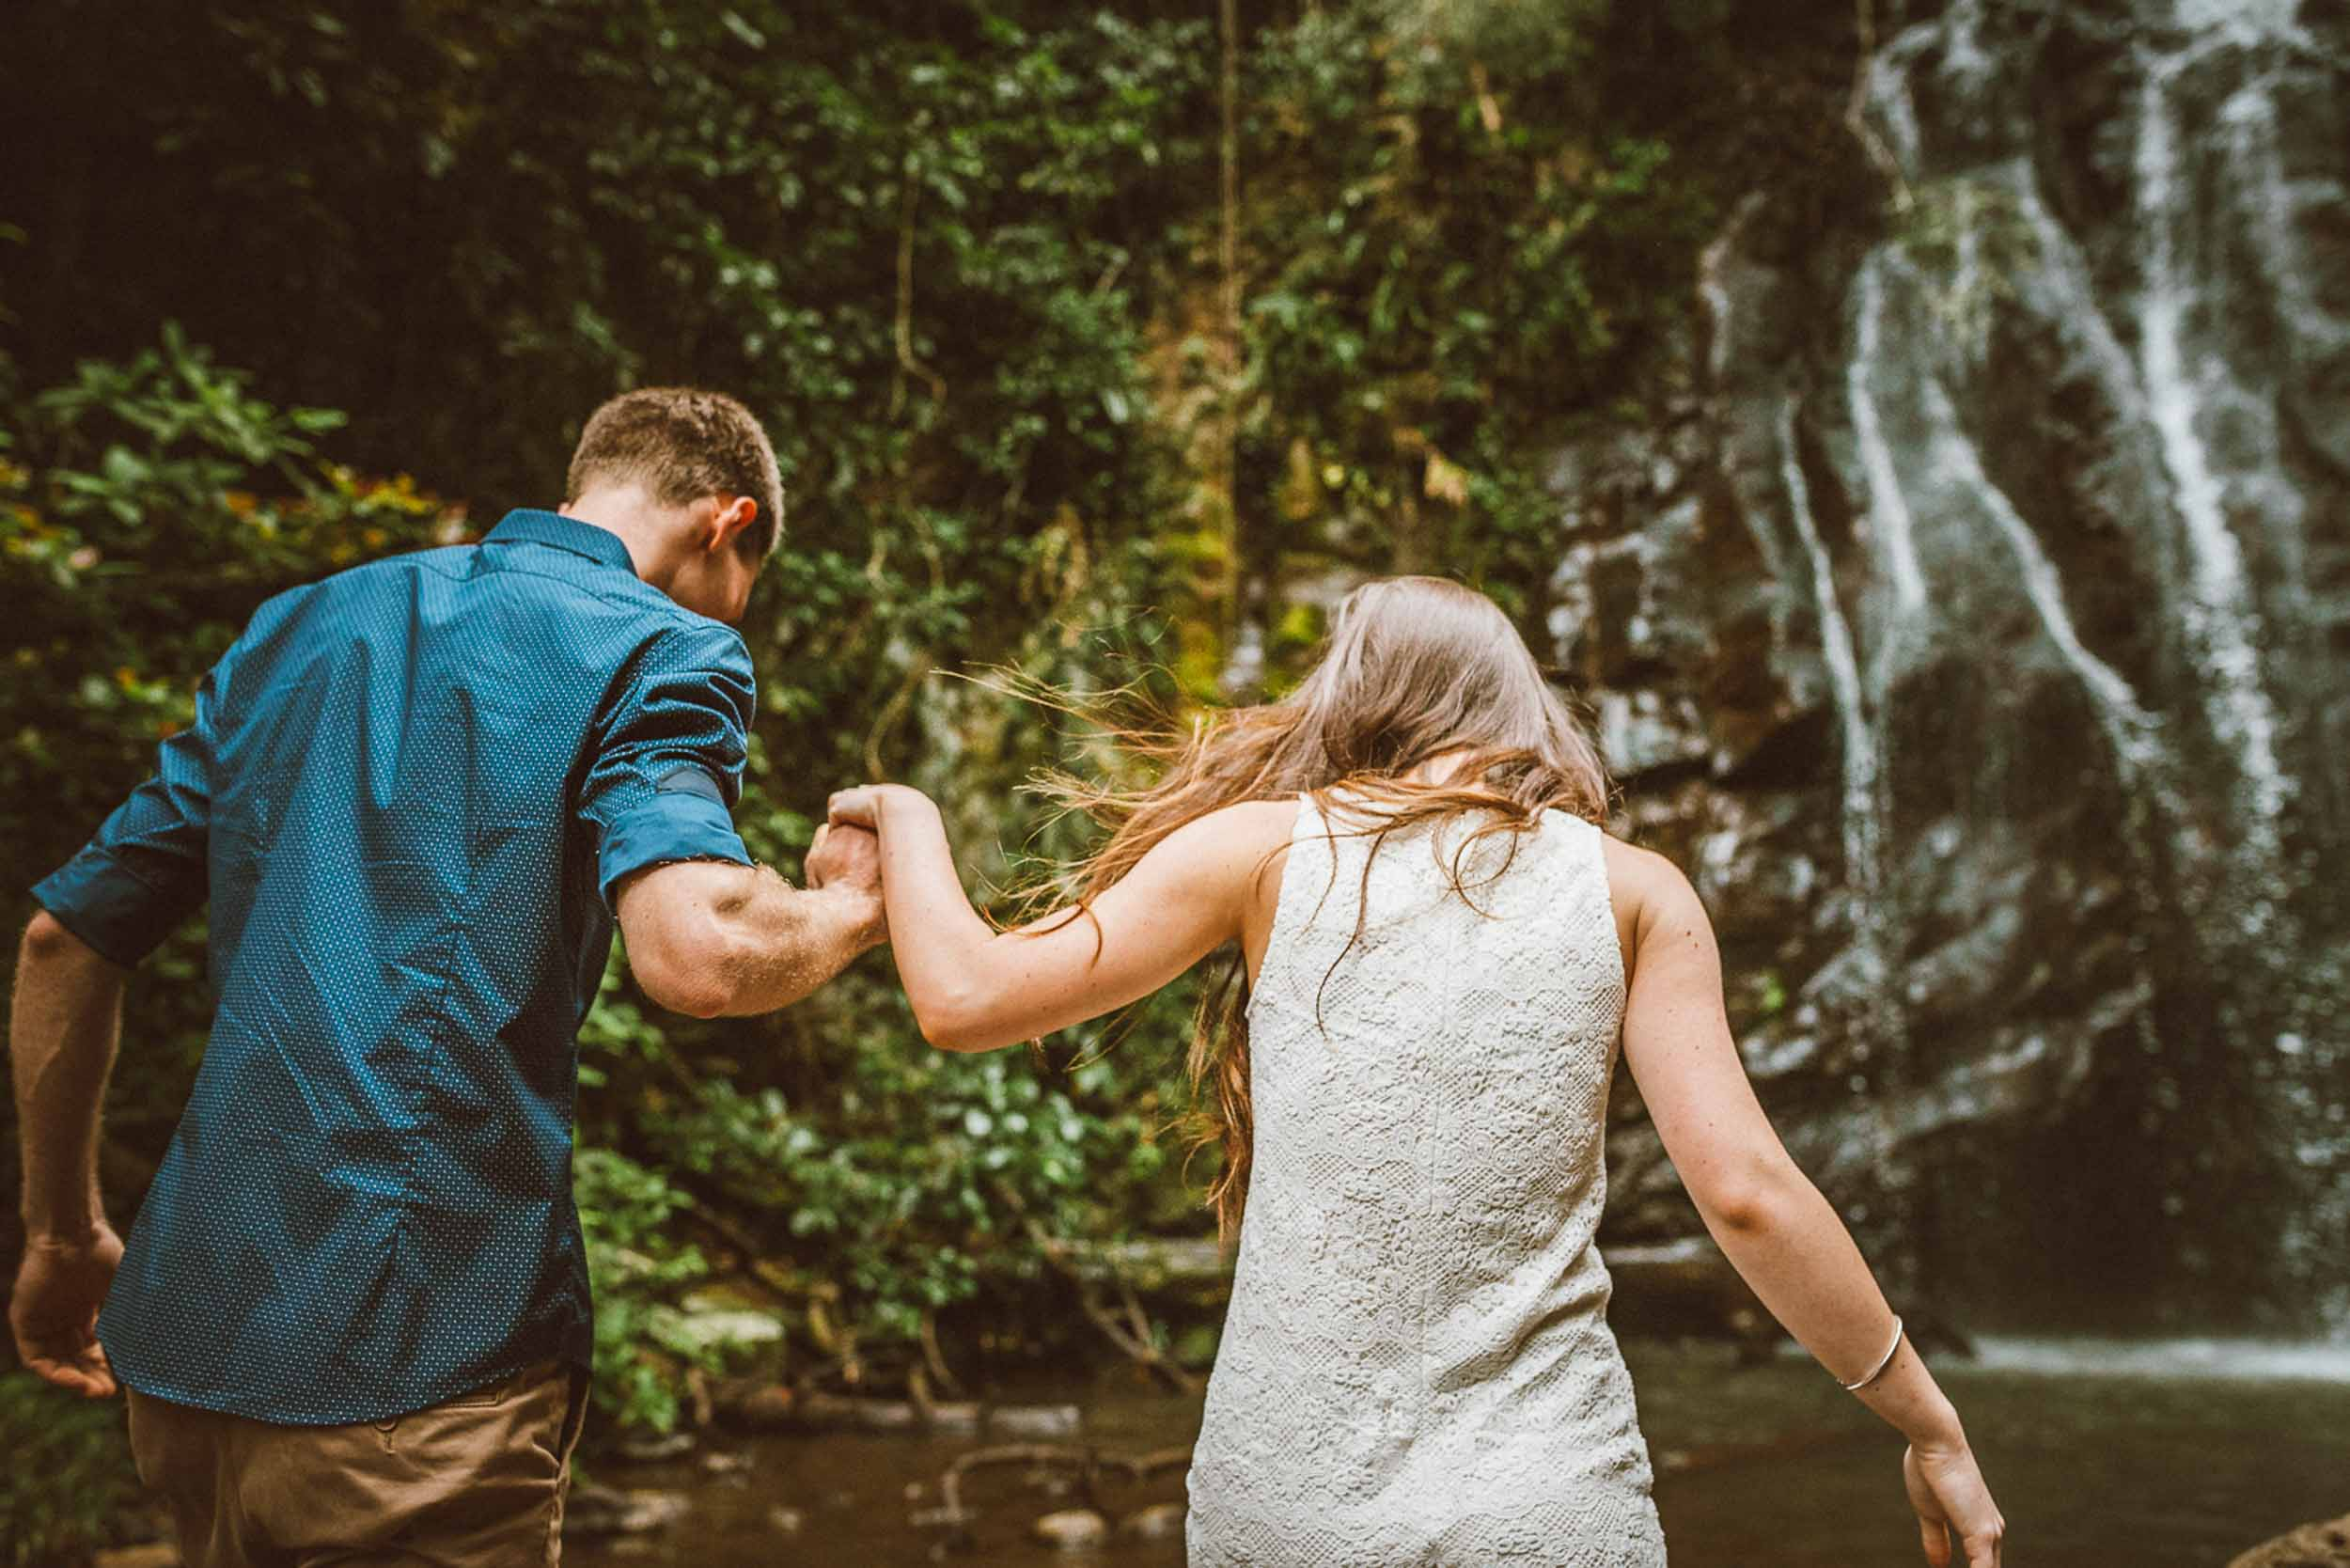 The Raw Photographer - Wedding Photographer - Tablelands Mareeba Atherton Engagement- Couple Session Photos in Cairns - Engaged Price - Rainforest Waterfall Queensland - photoshoot-19.jpg